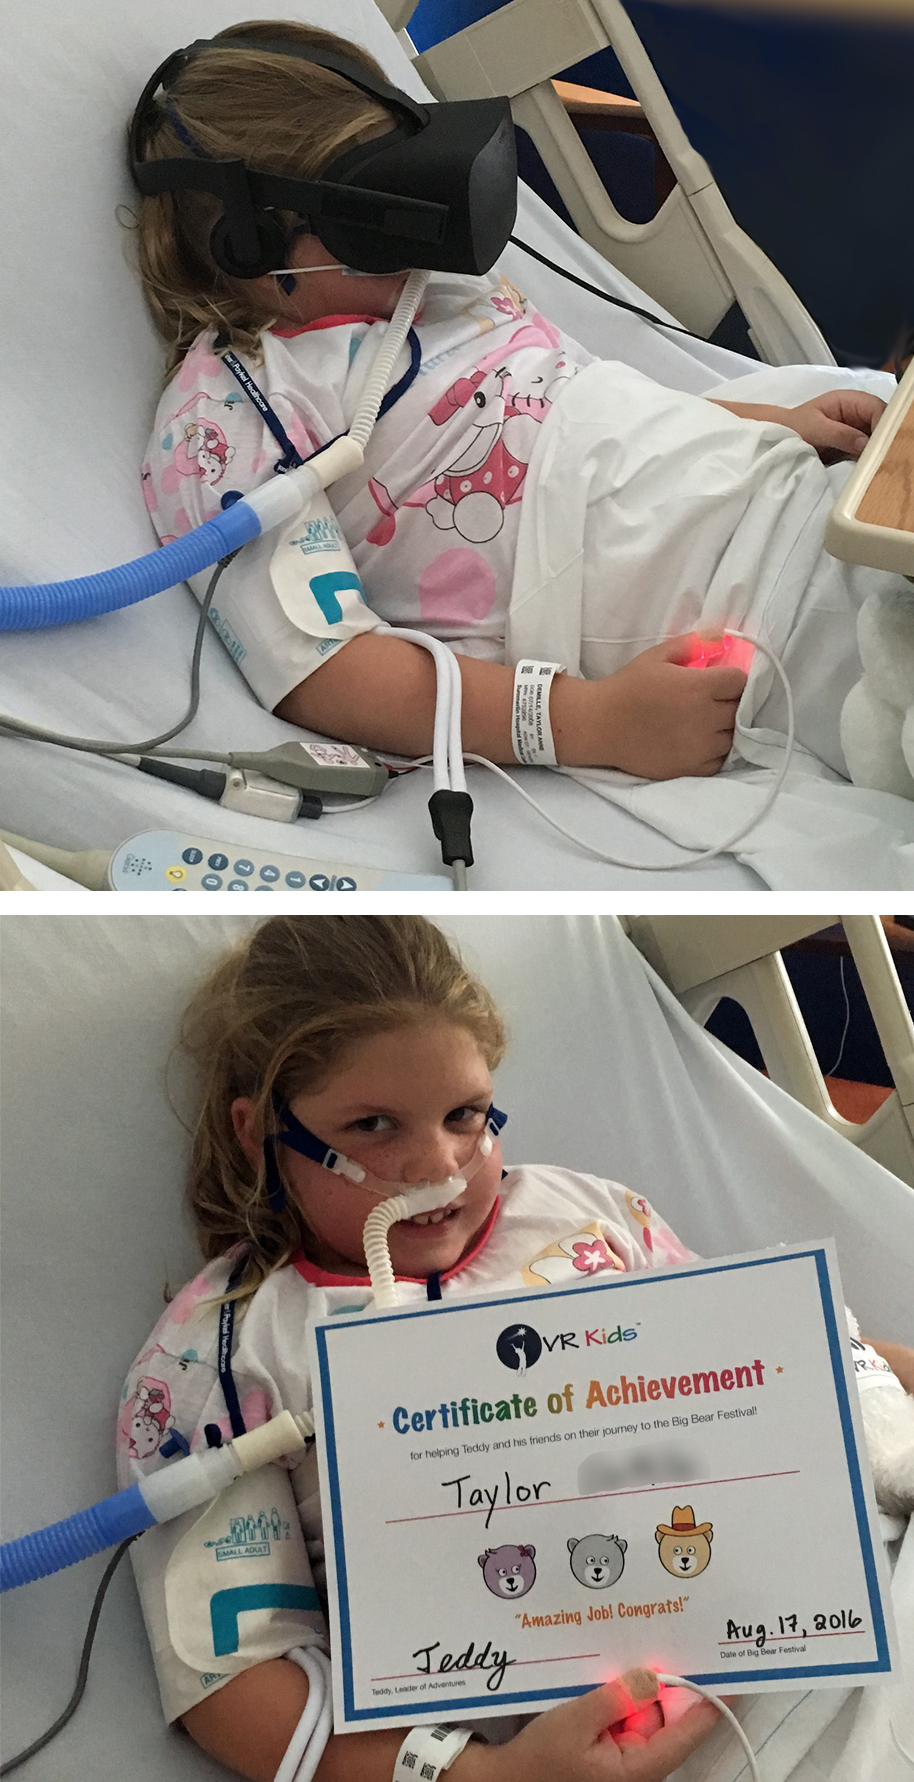 Girl in hospital using therapeutic virtual reality.